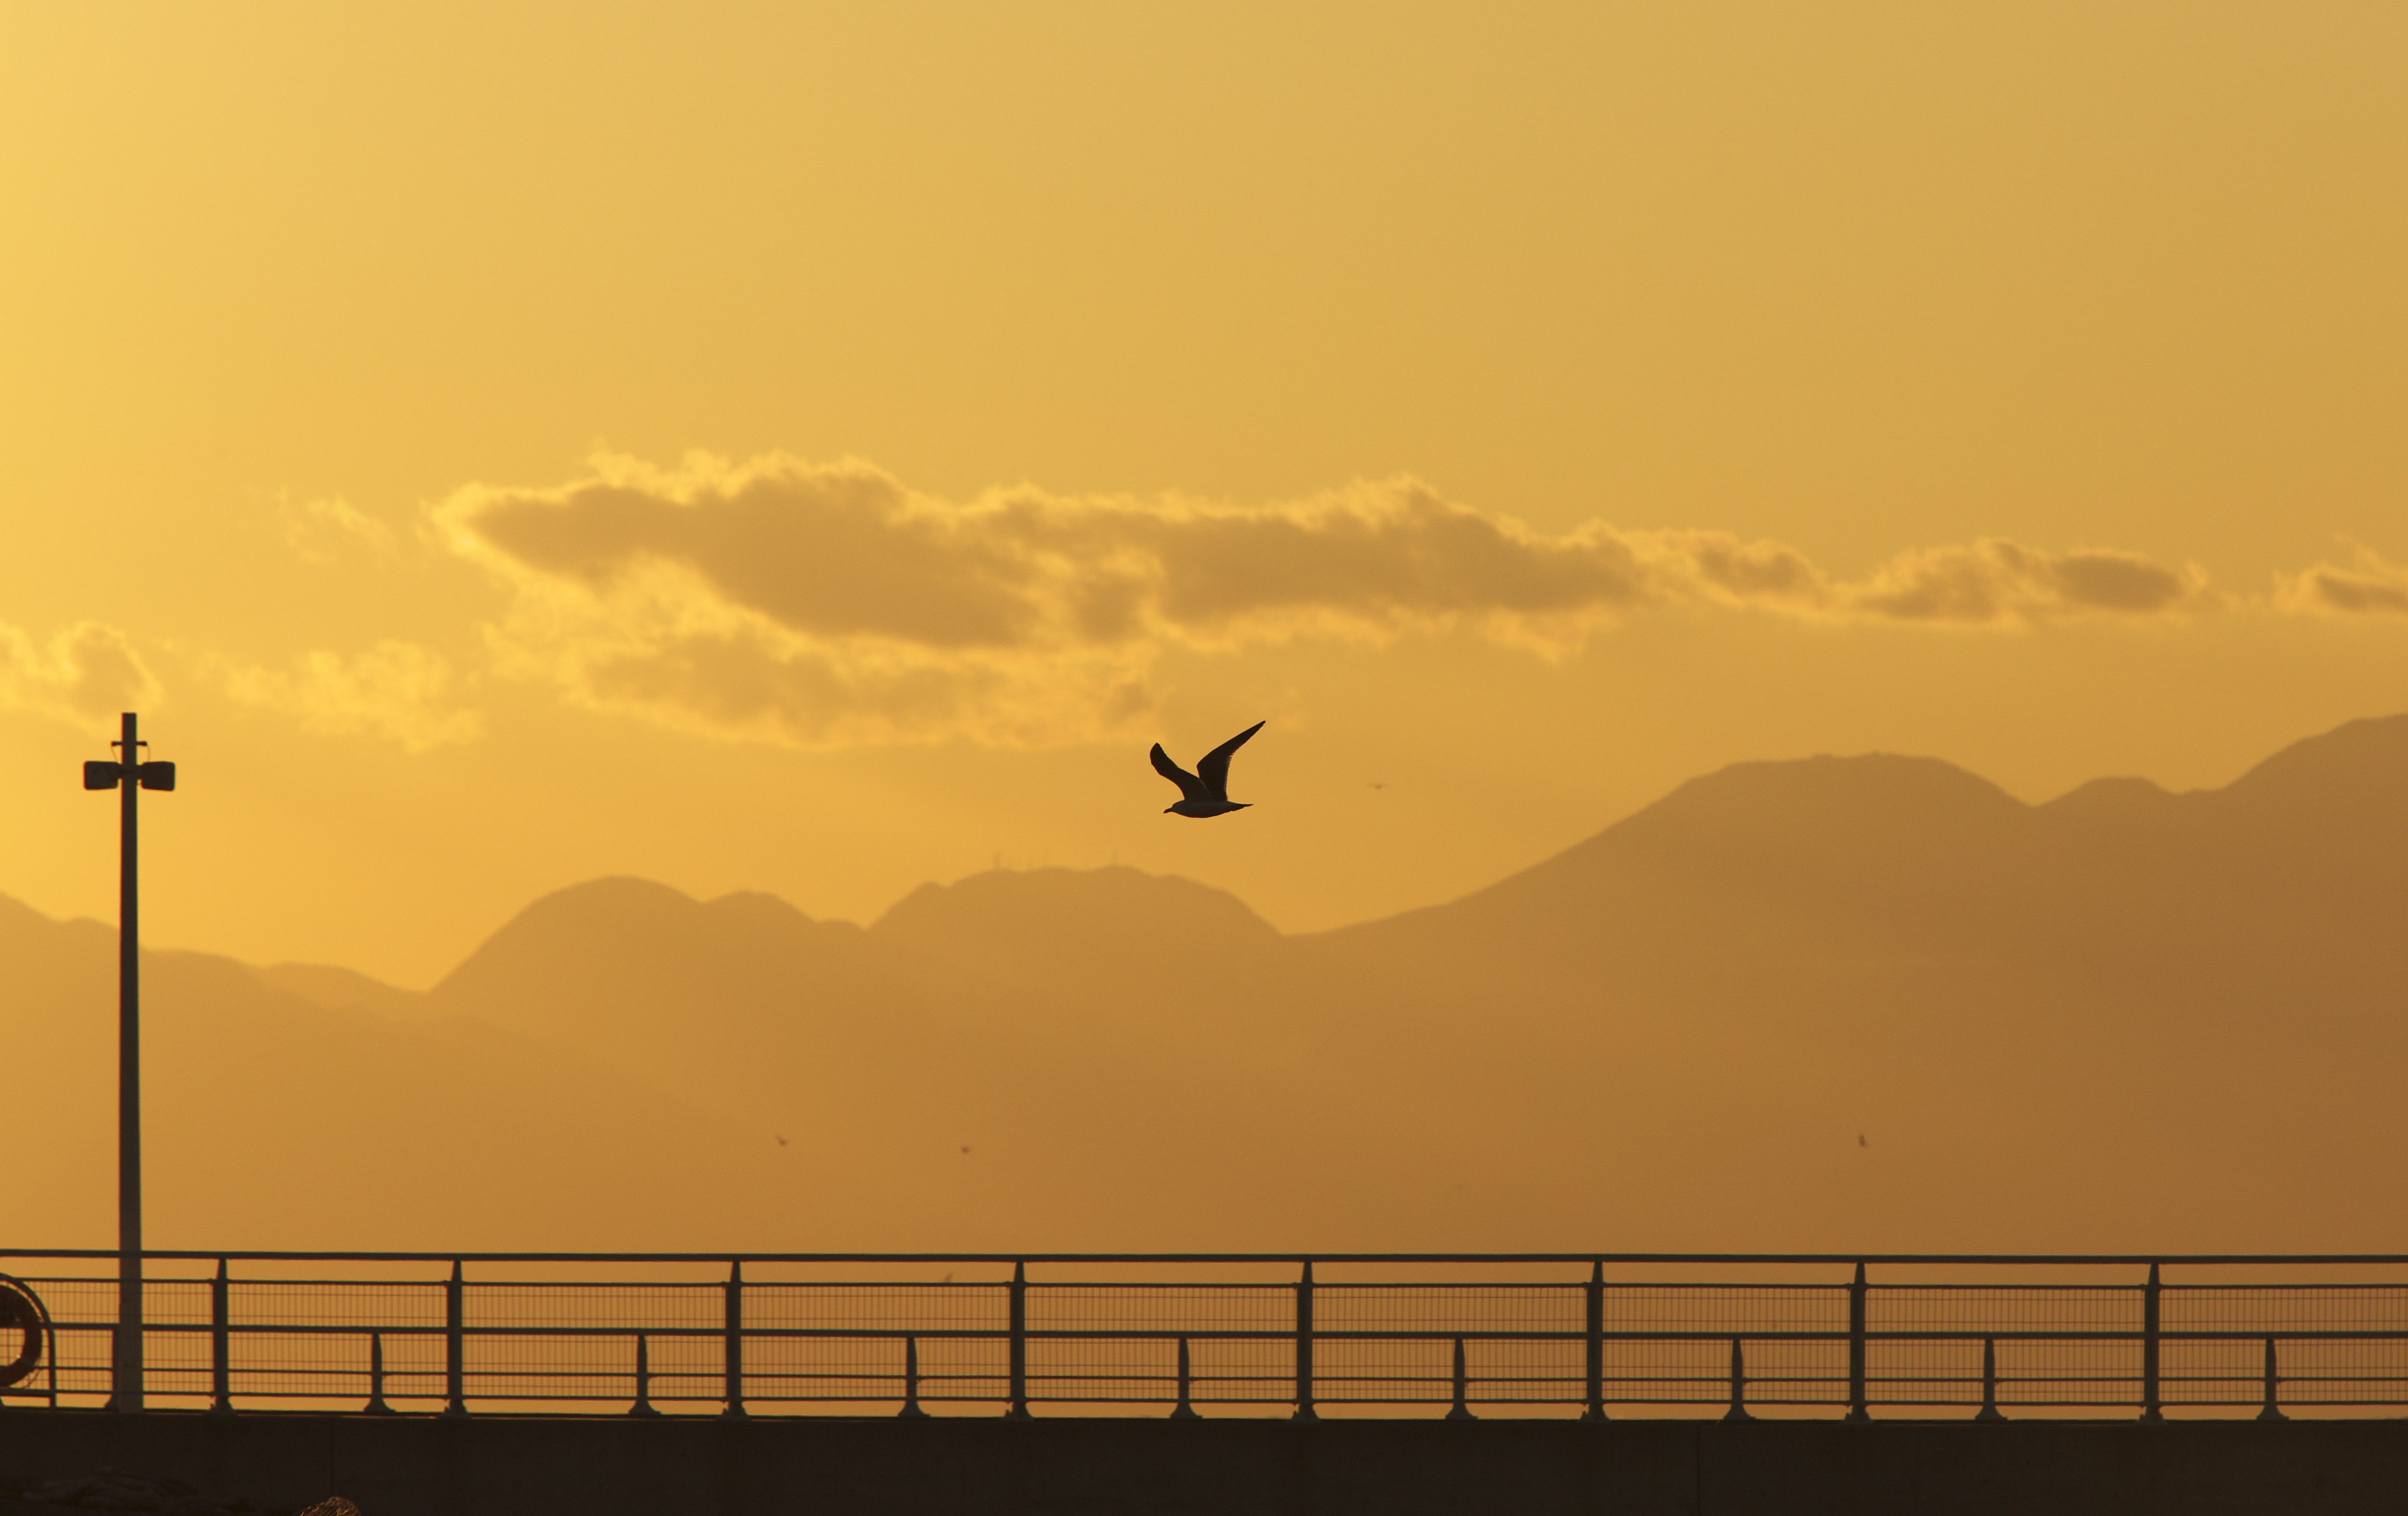 123043 download wallpaper Nature, Gull, Seagull, Bird, Silhouette, Flight, Sunset screensavers and pictures for free